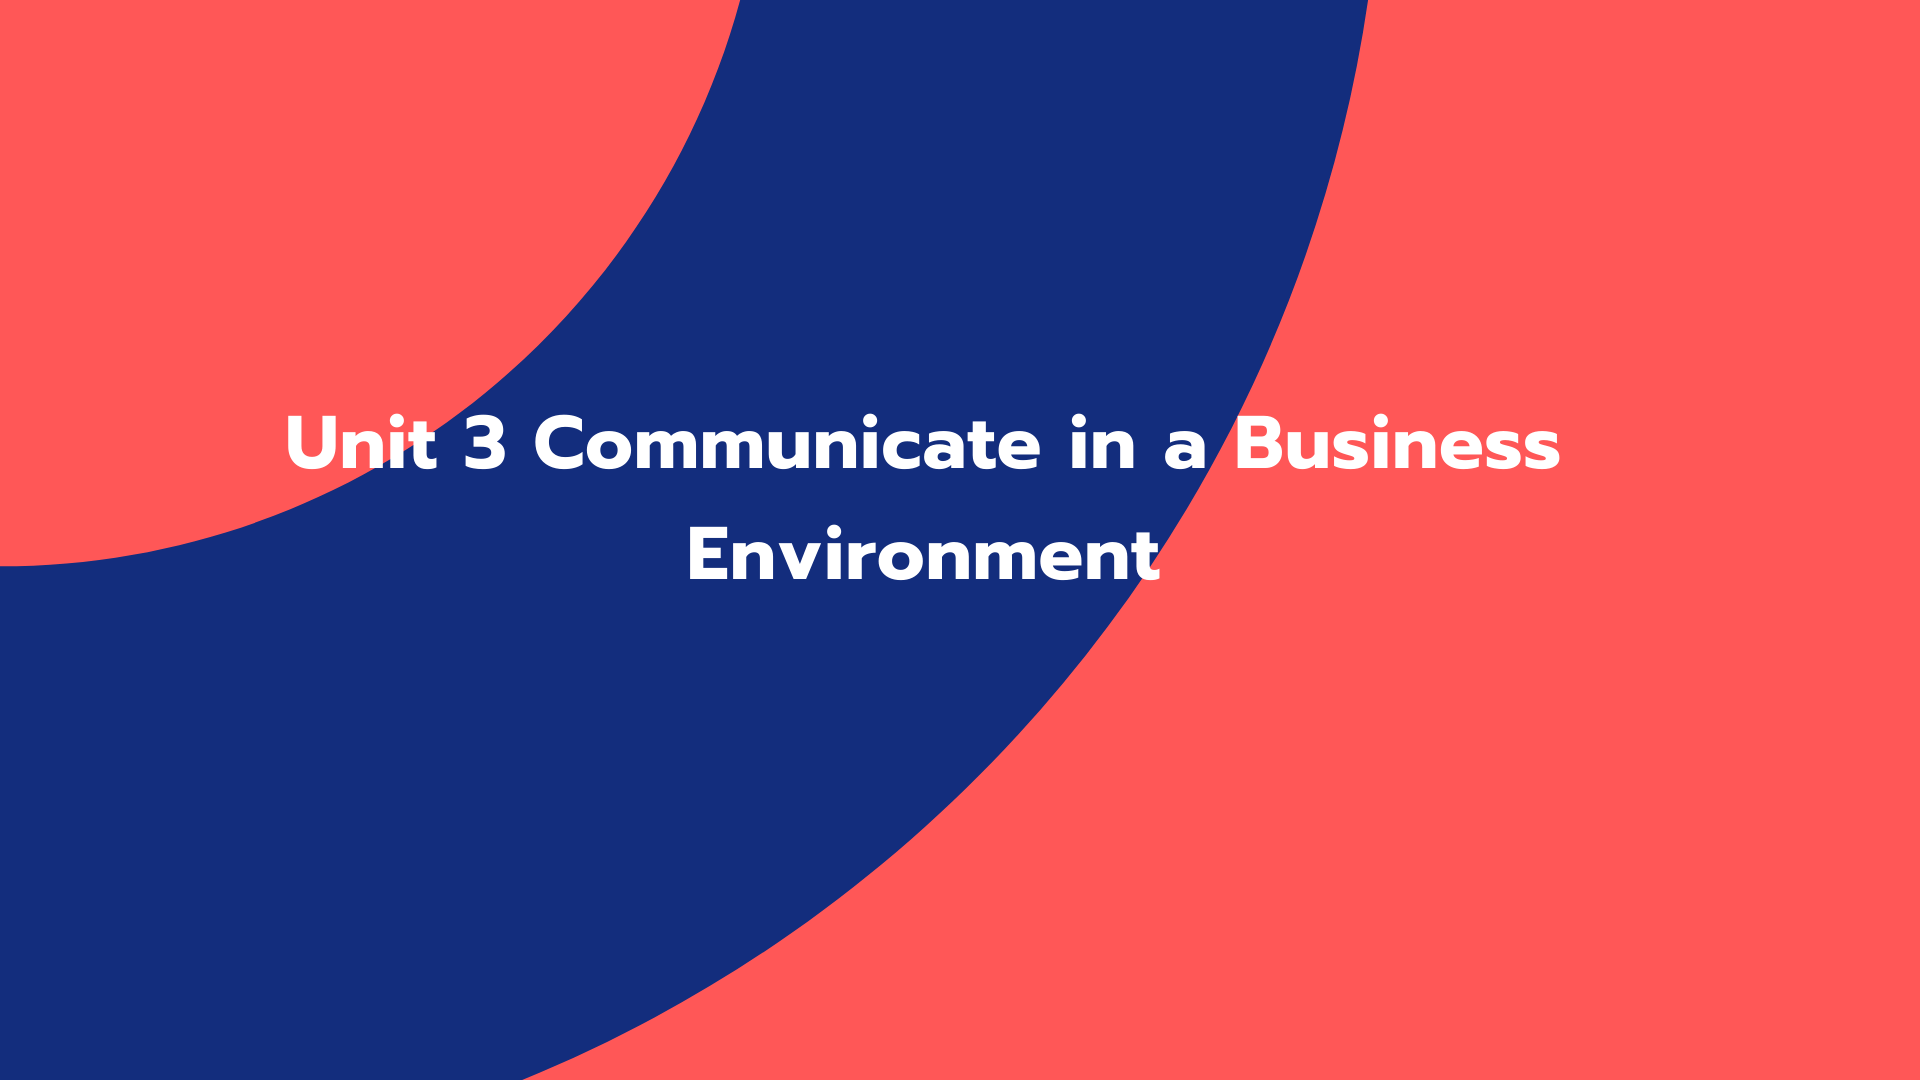 Unit 3 Communicate in a Business Environment